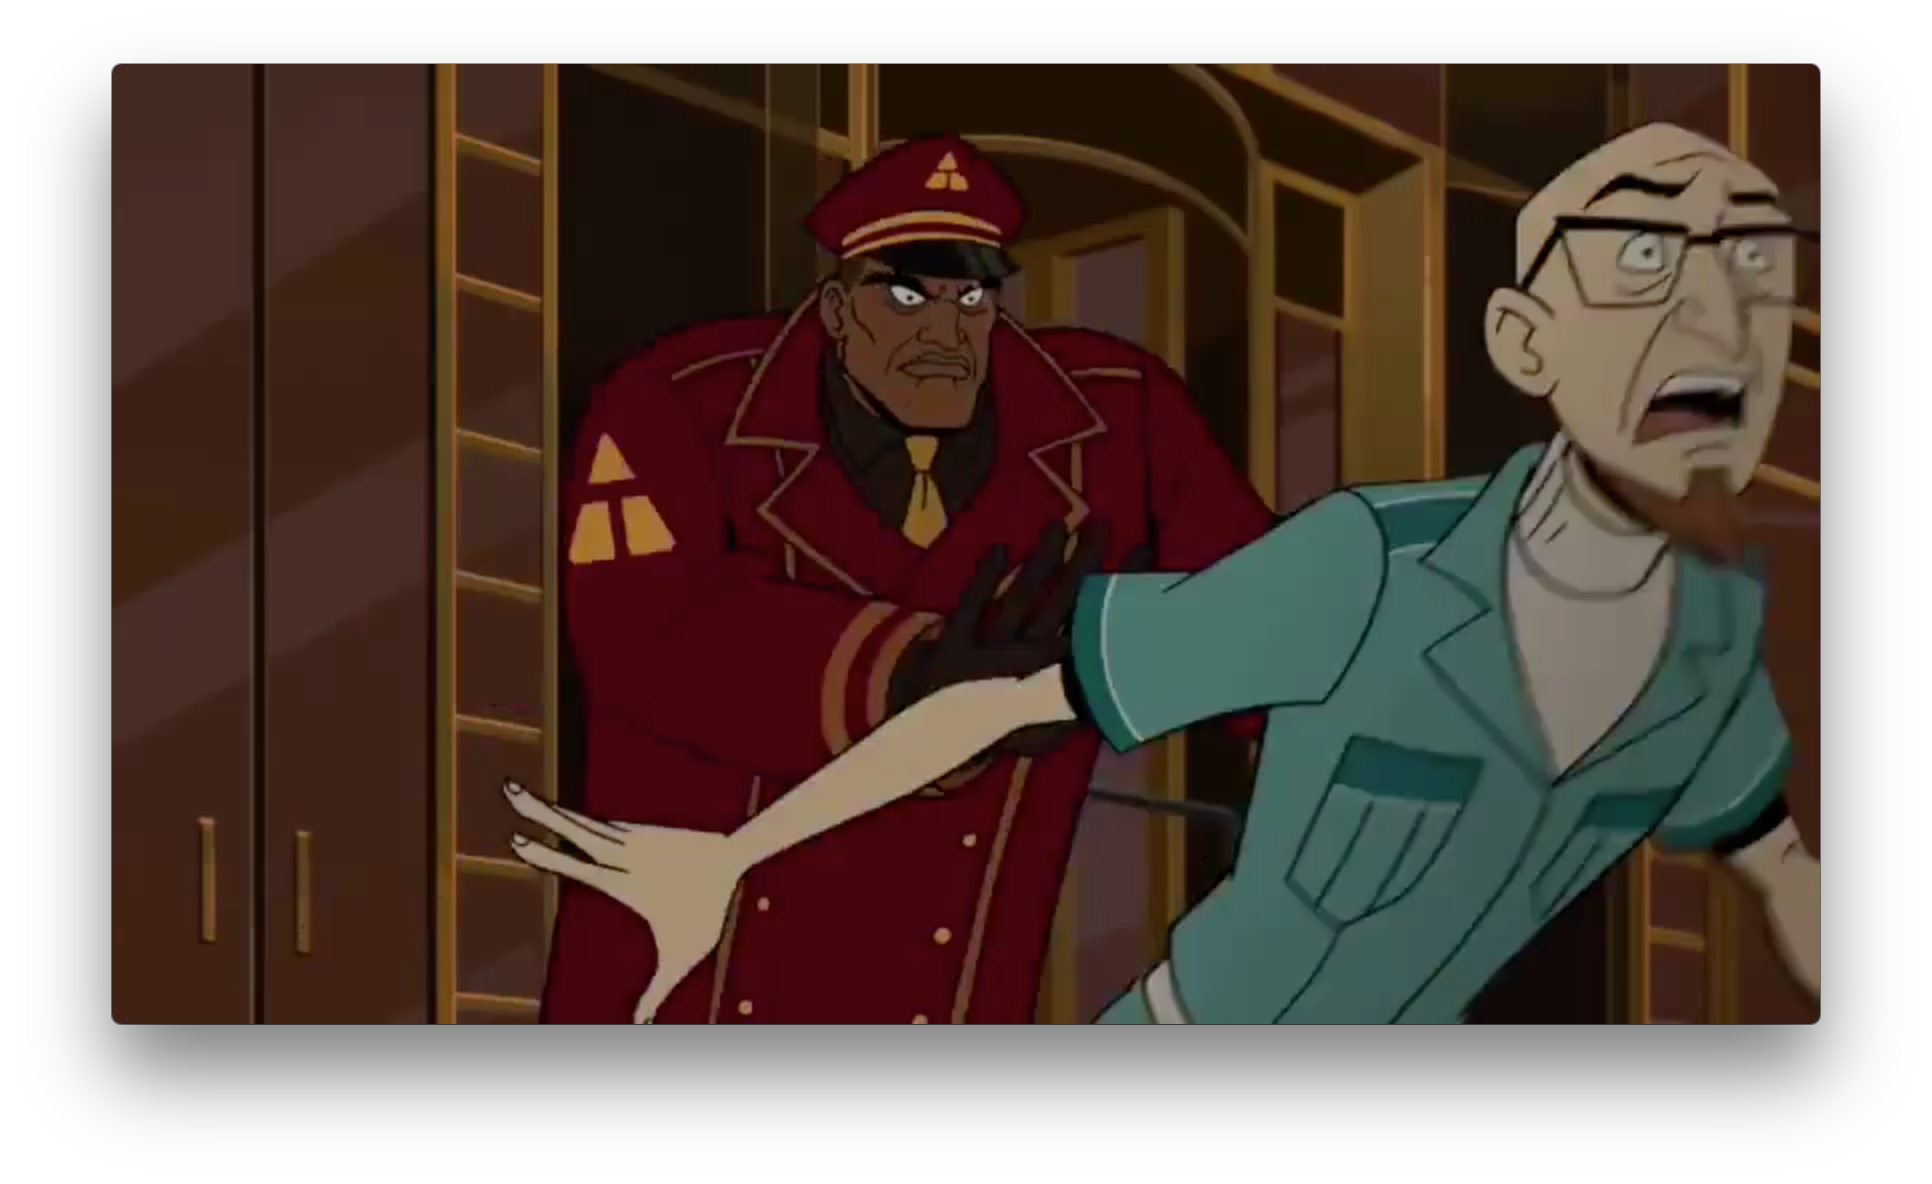 Doc getting thrown out of a swanky place isn't new either, but the emblem on the doorman's uniform is. Whose organization would have a T and a triangle on it?